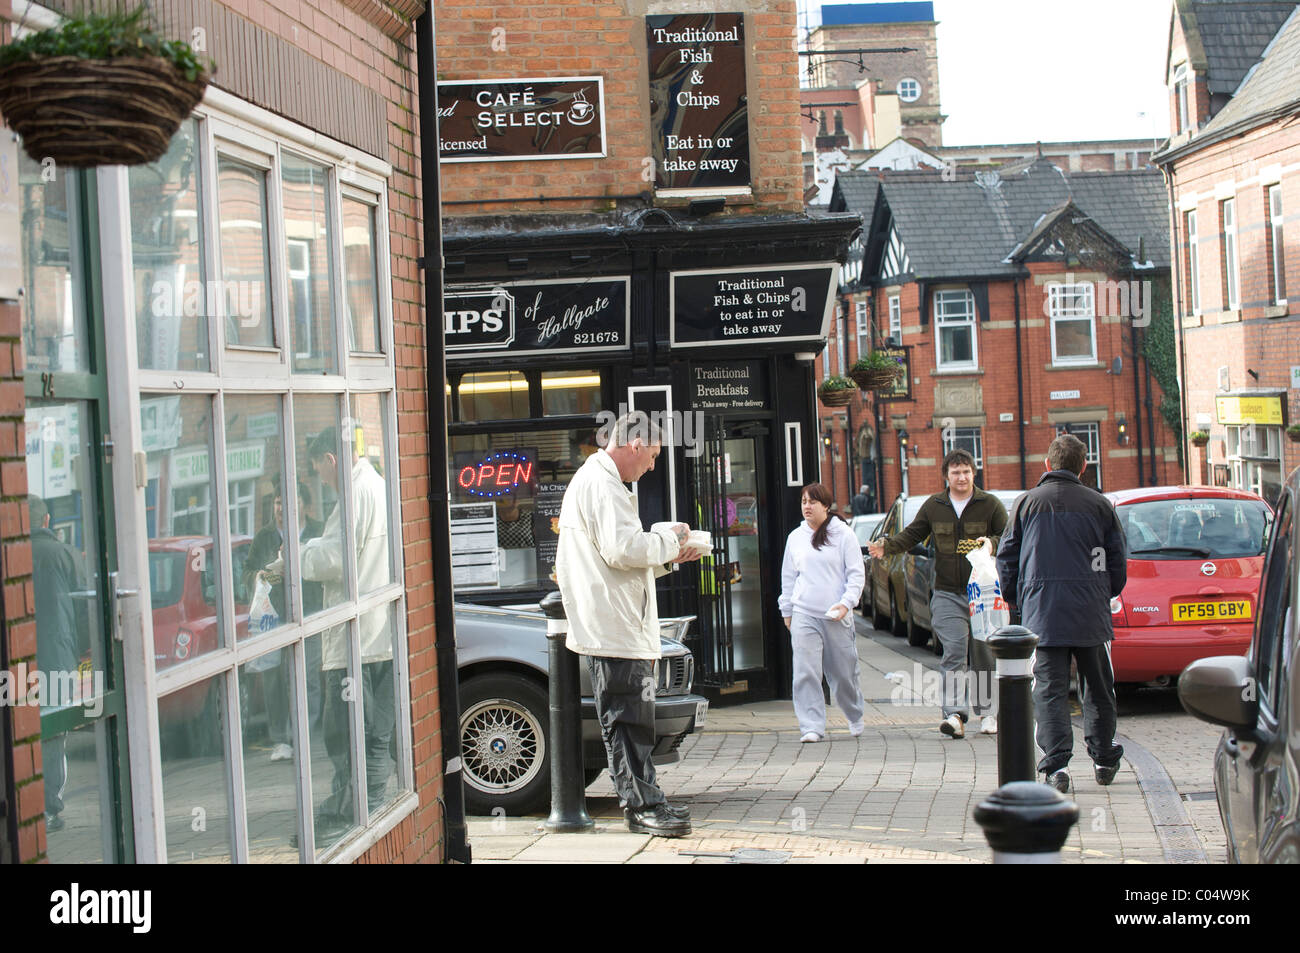 Wigan fish and chip shop - Stock Image